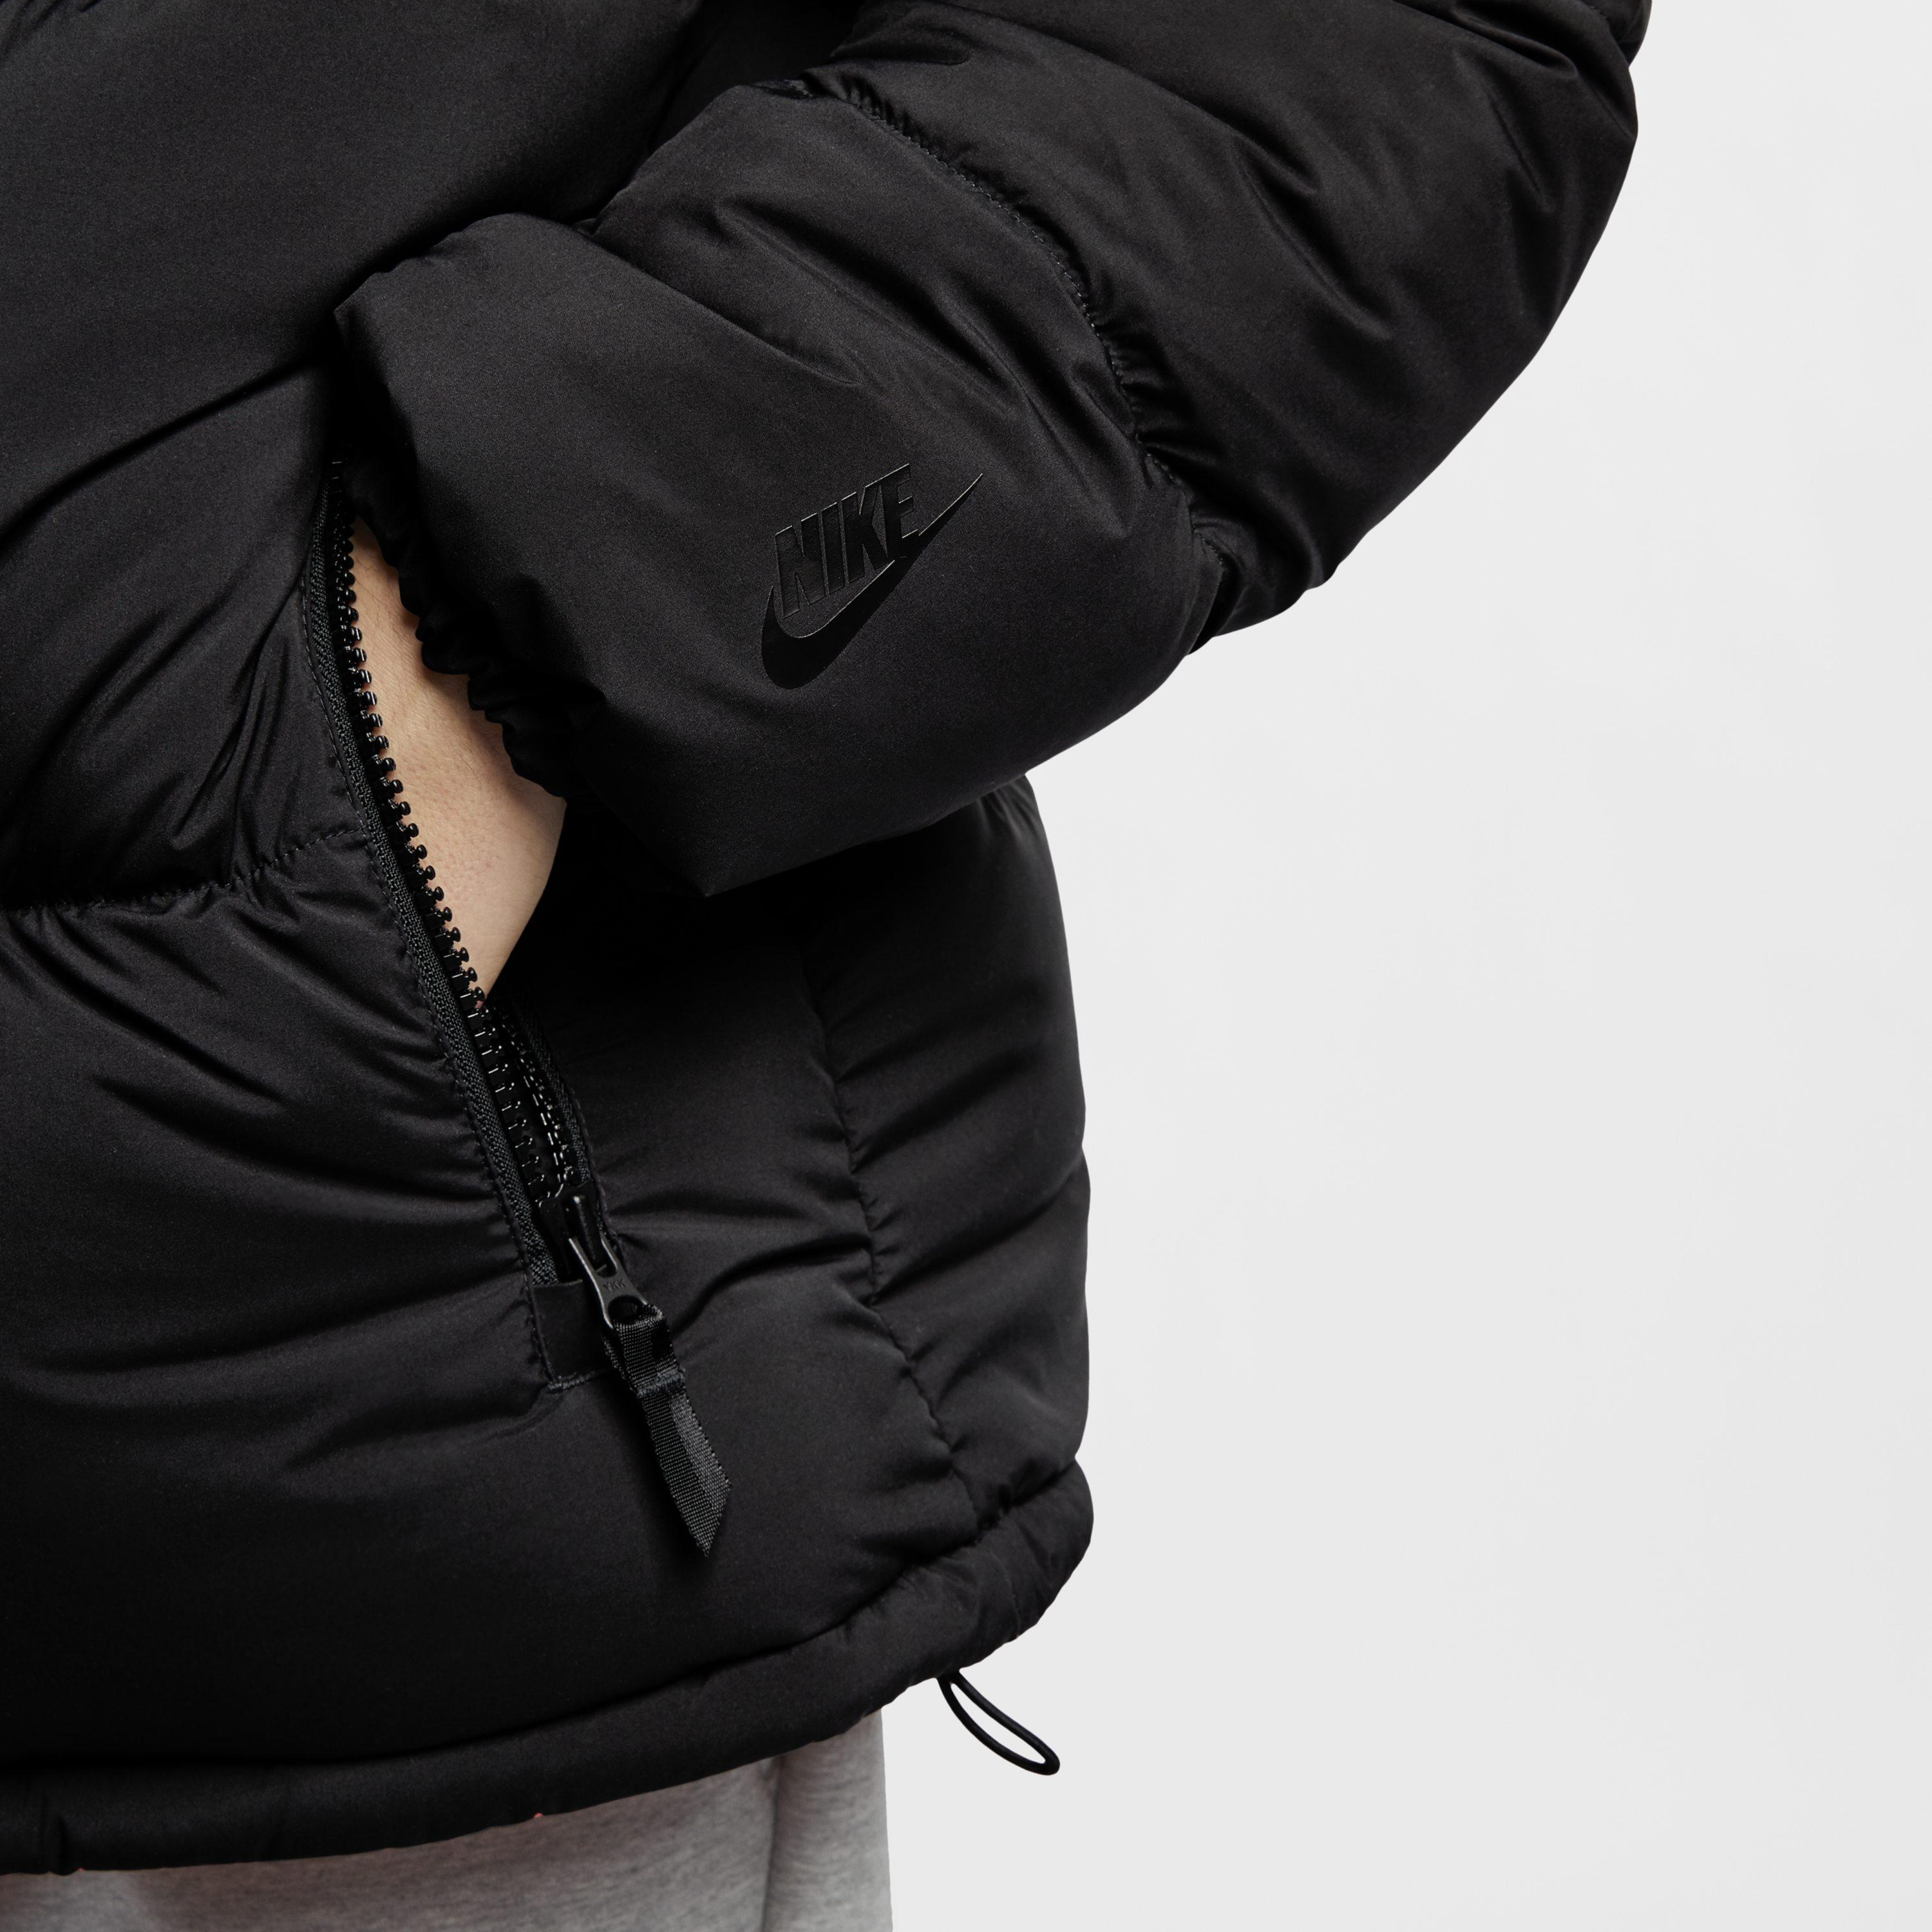 cdc7574301 Nike Lab Collection Puffer Jacket in Black for Men - Lyst